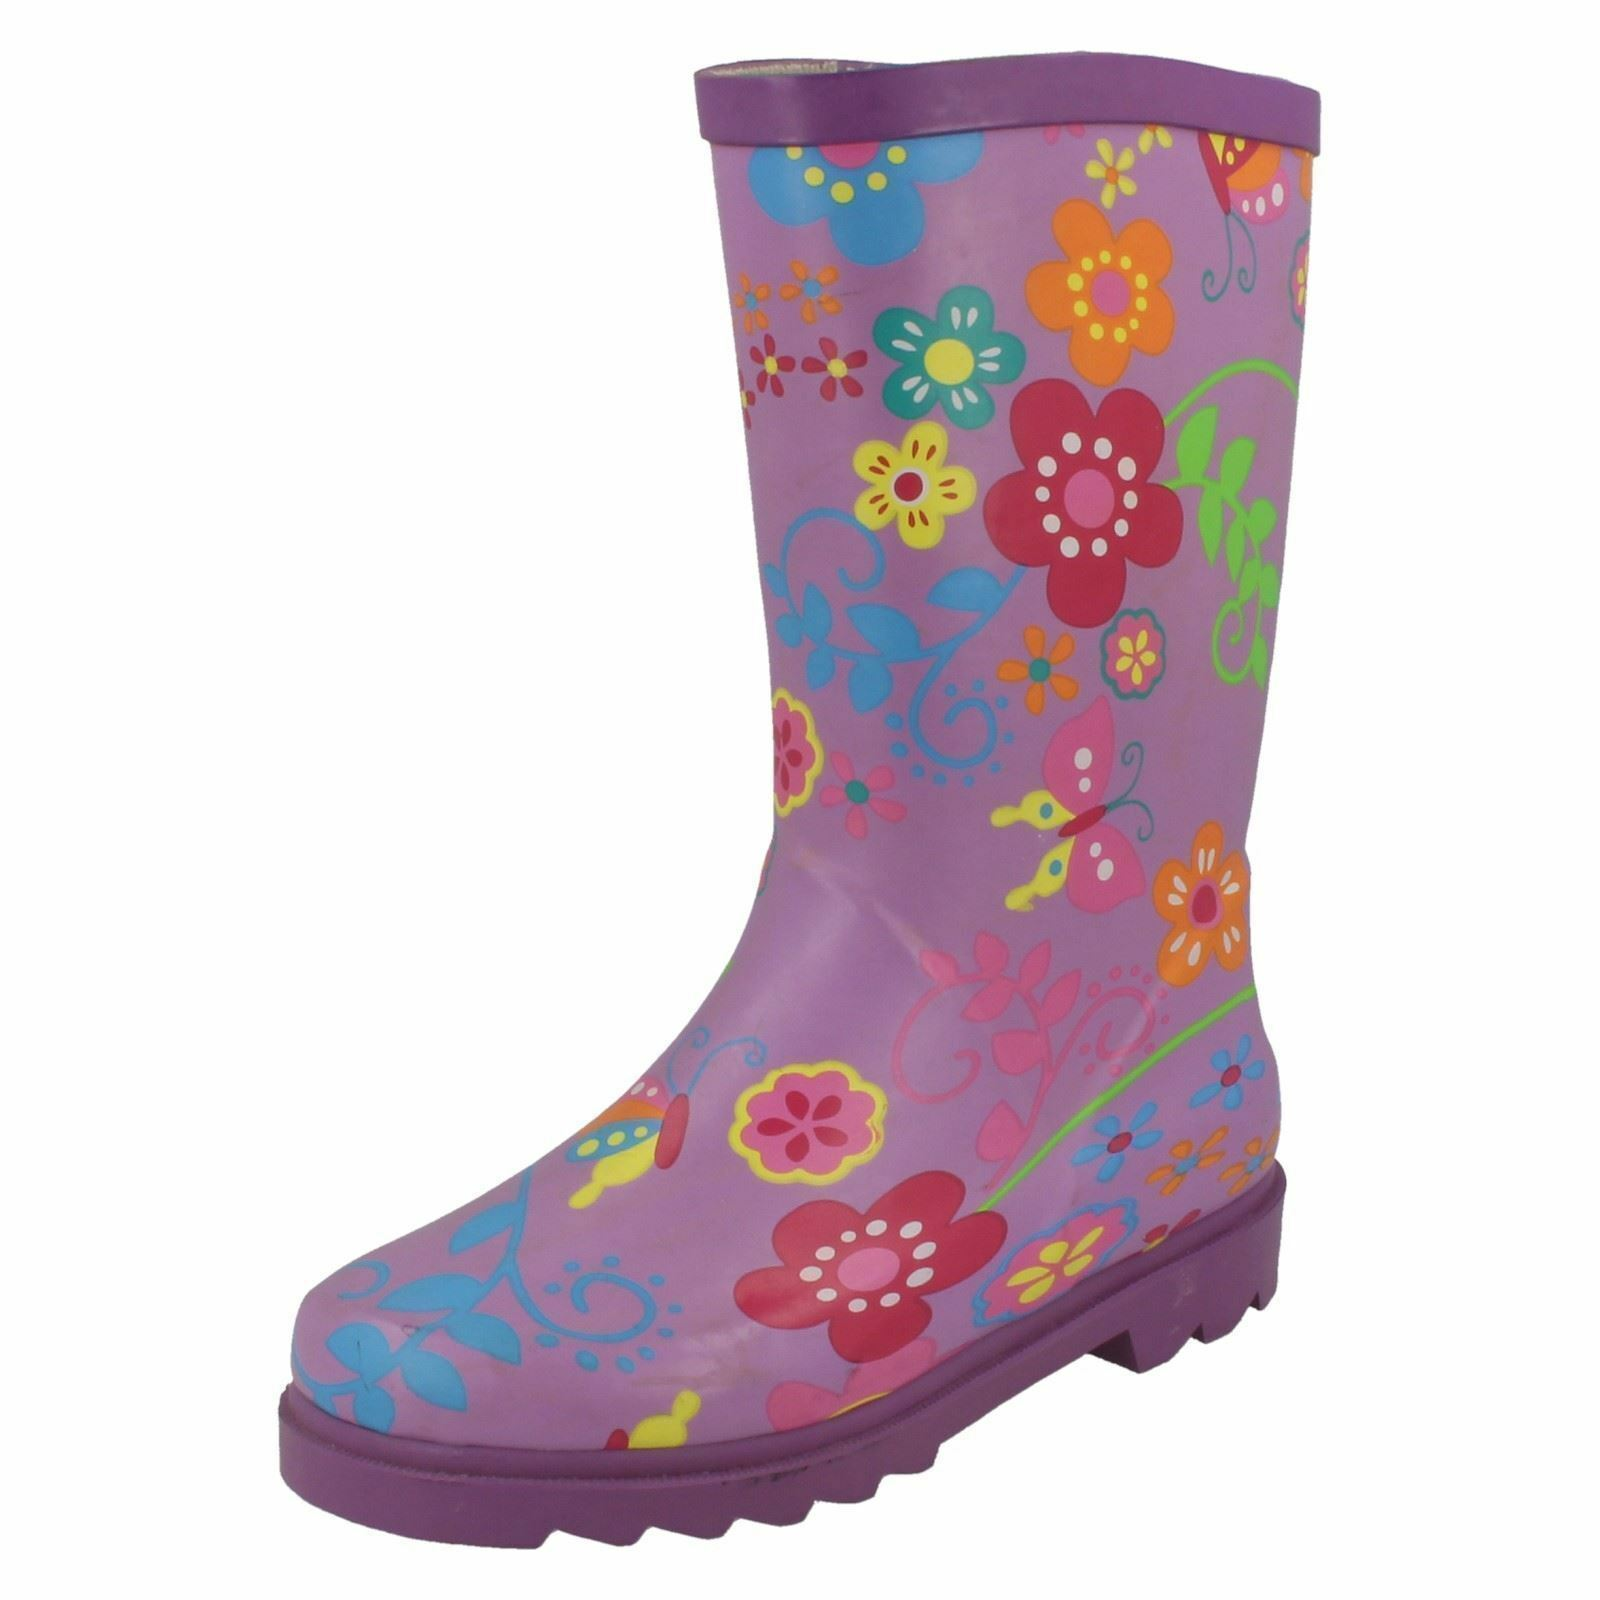 Childrens Funky Rubber Purple Floral Print Wellies - X1062 LB4